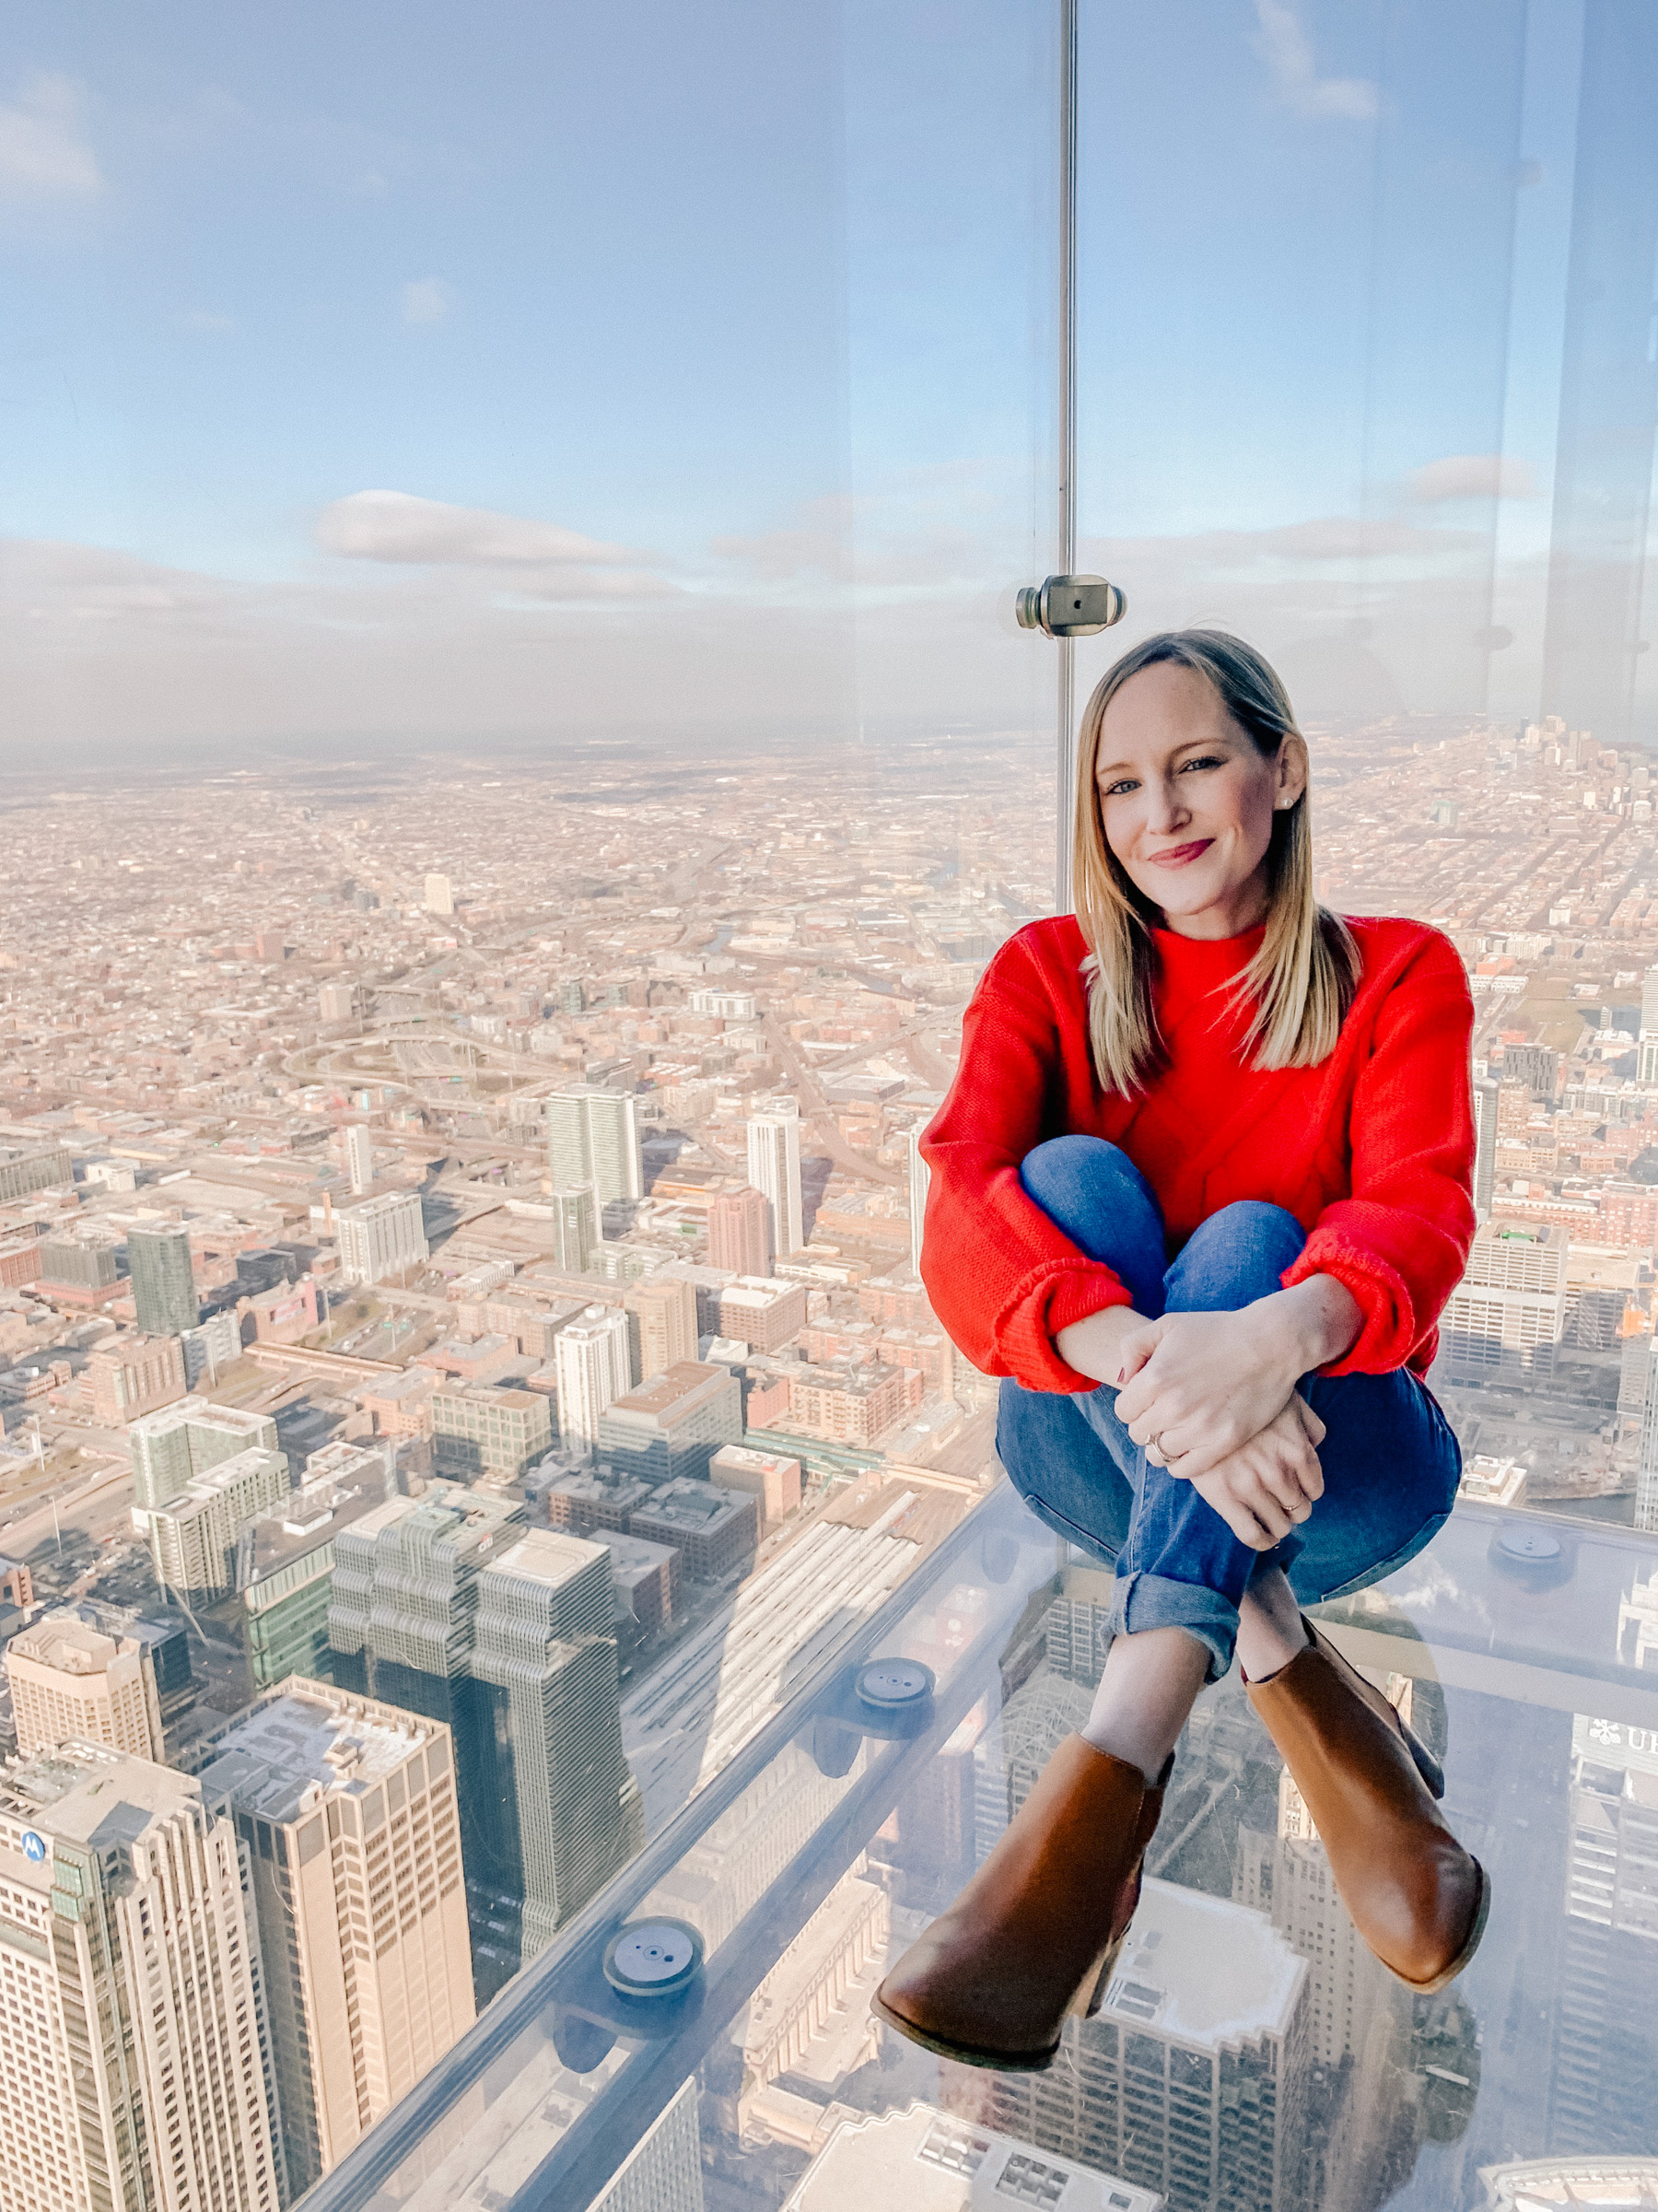 Kelly in the City - Willis Tower Skydeck